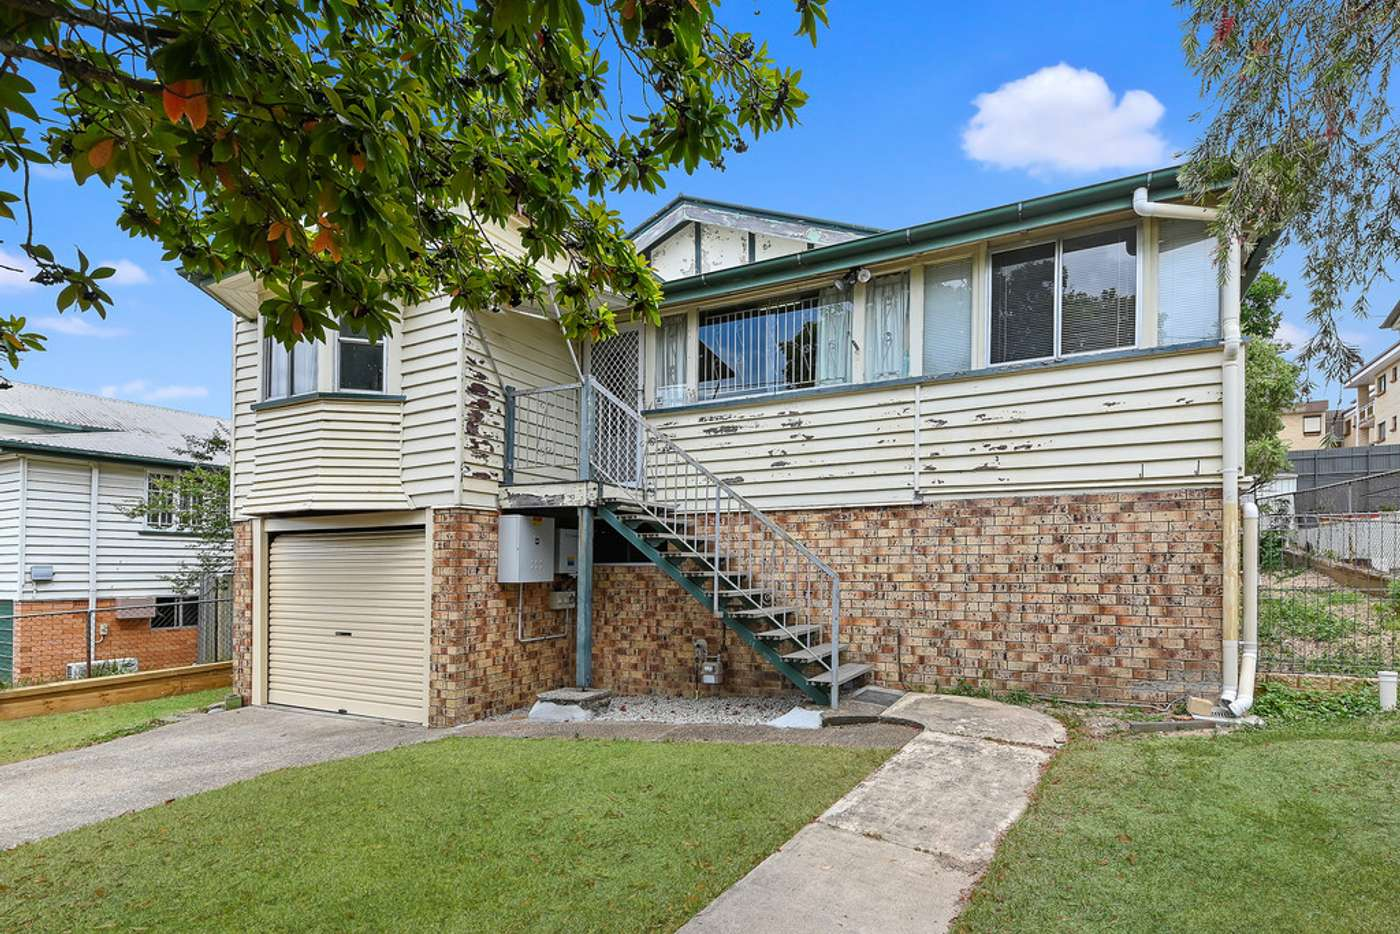 Main view of Homely house listing, 47 Greene Street, Newmarket QLD 4051